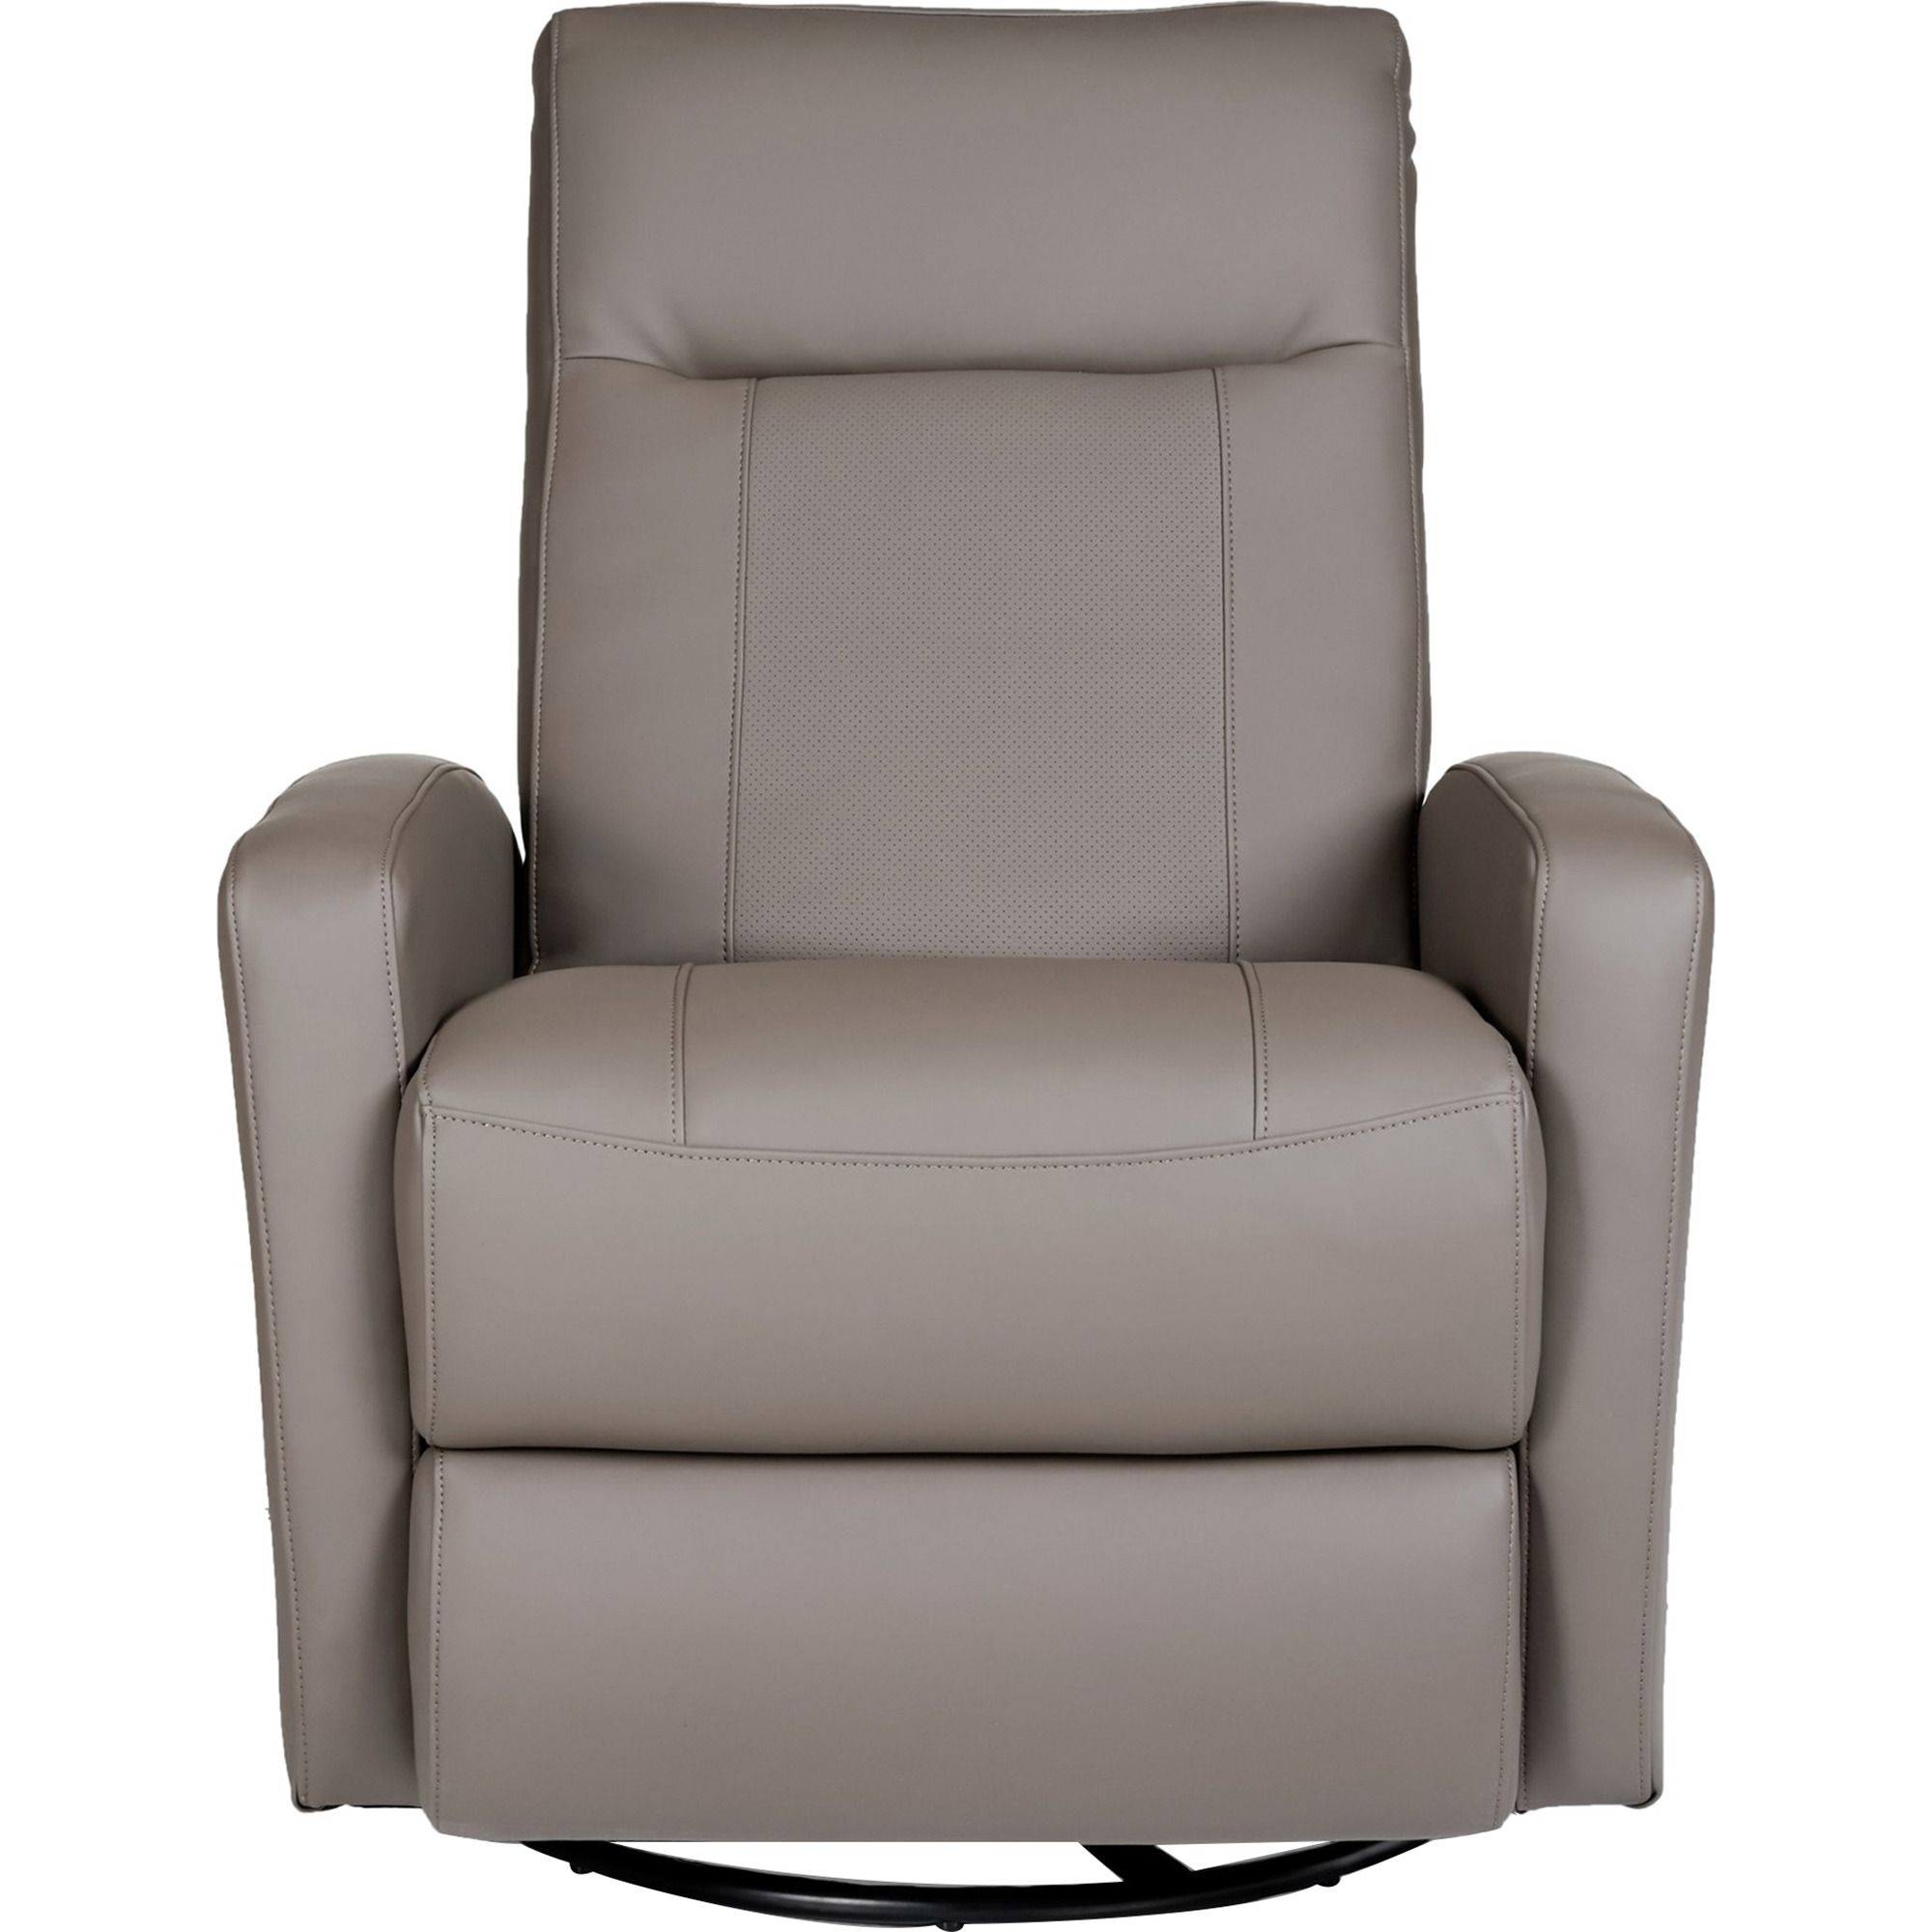 Stefan Swivel Glider Recliner in Gray   Opulence Home Furniture   Home  Gallery Stores